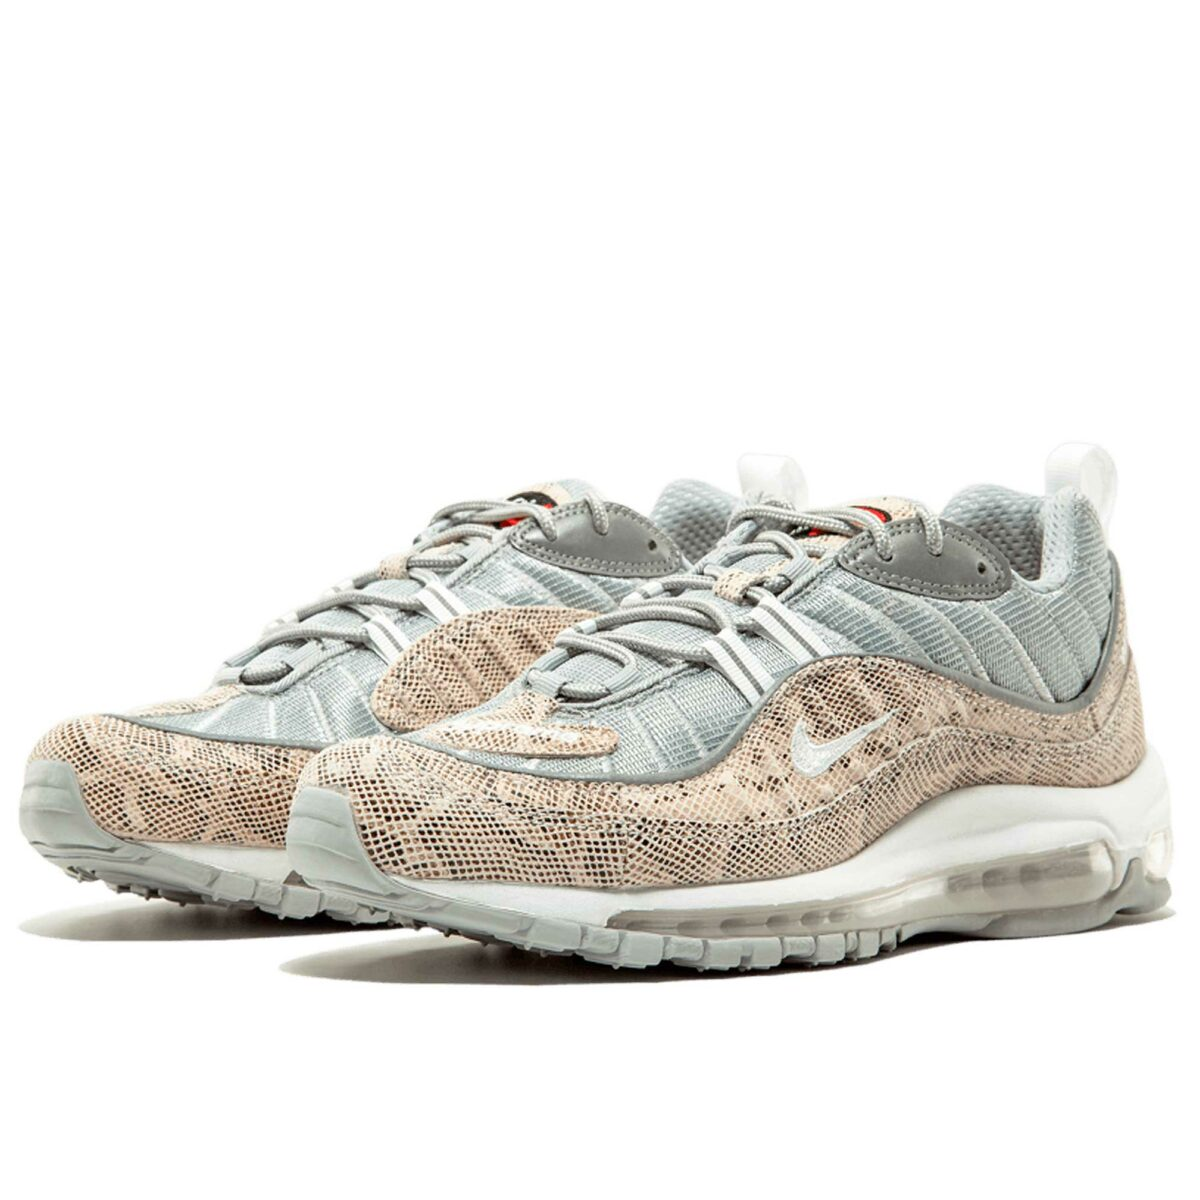 nike air max 98 supreme white silver 844694_100 купить